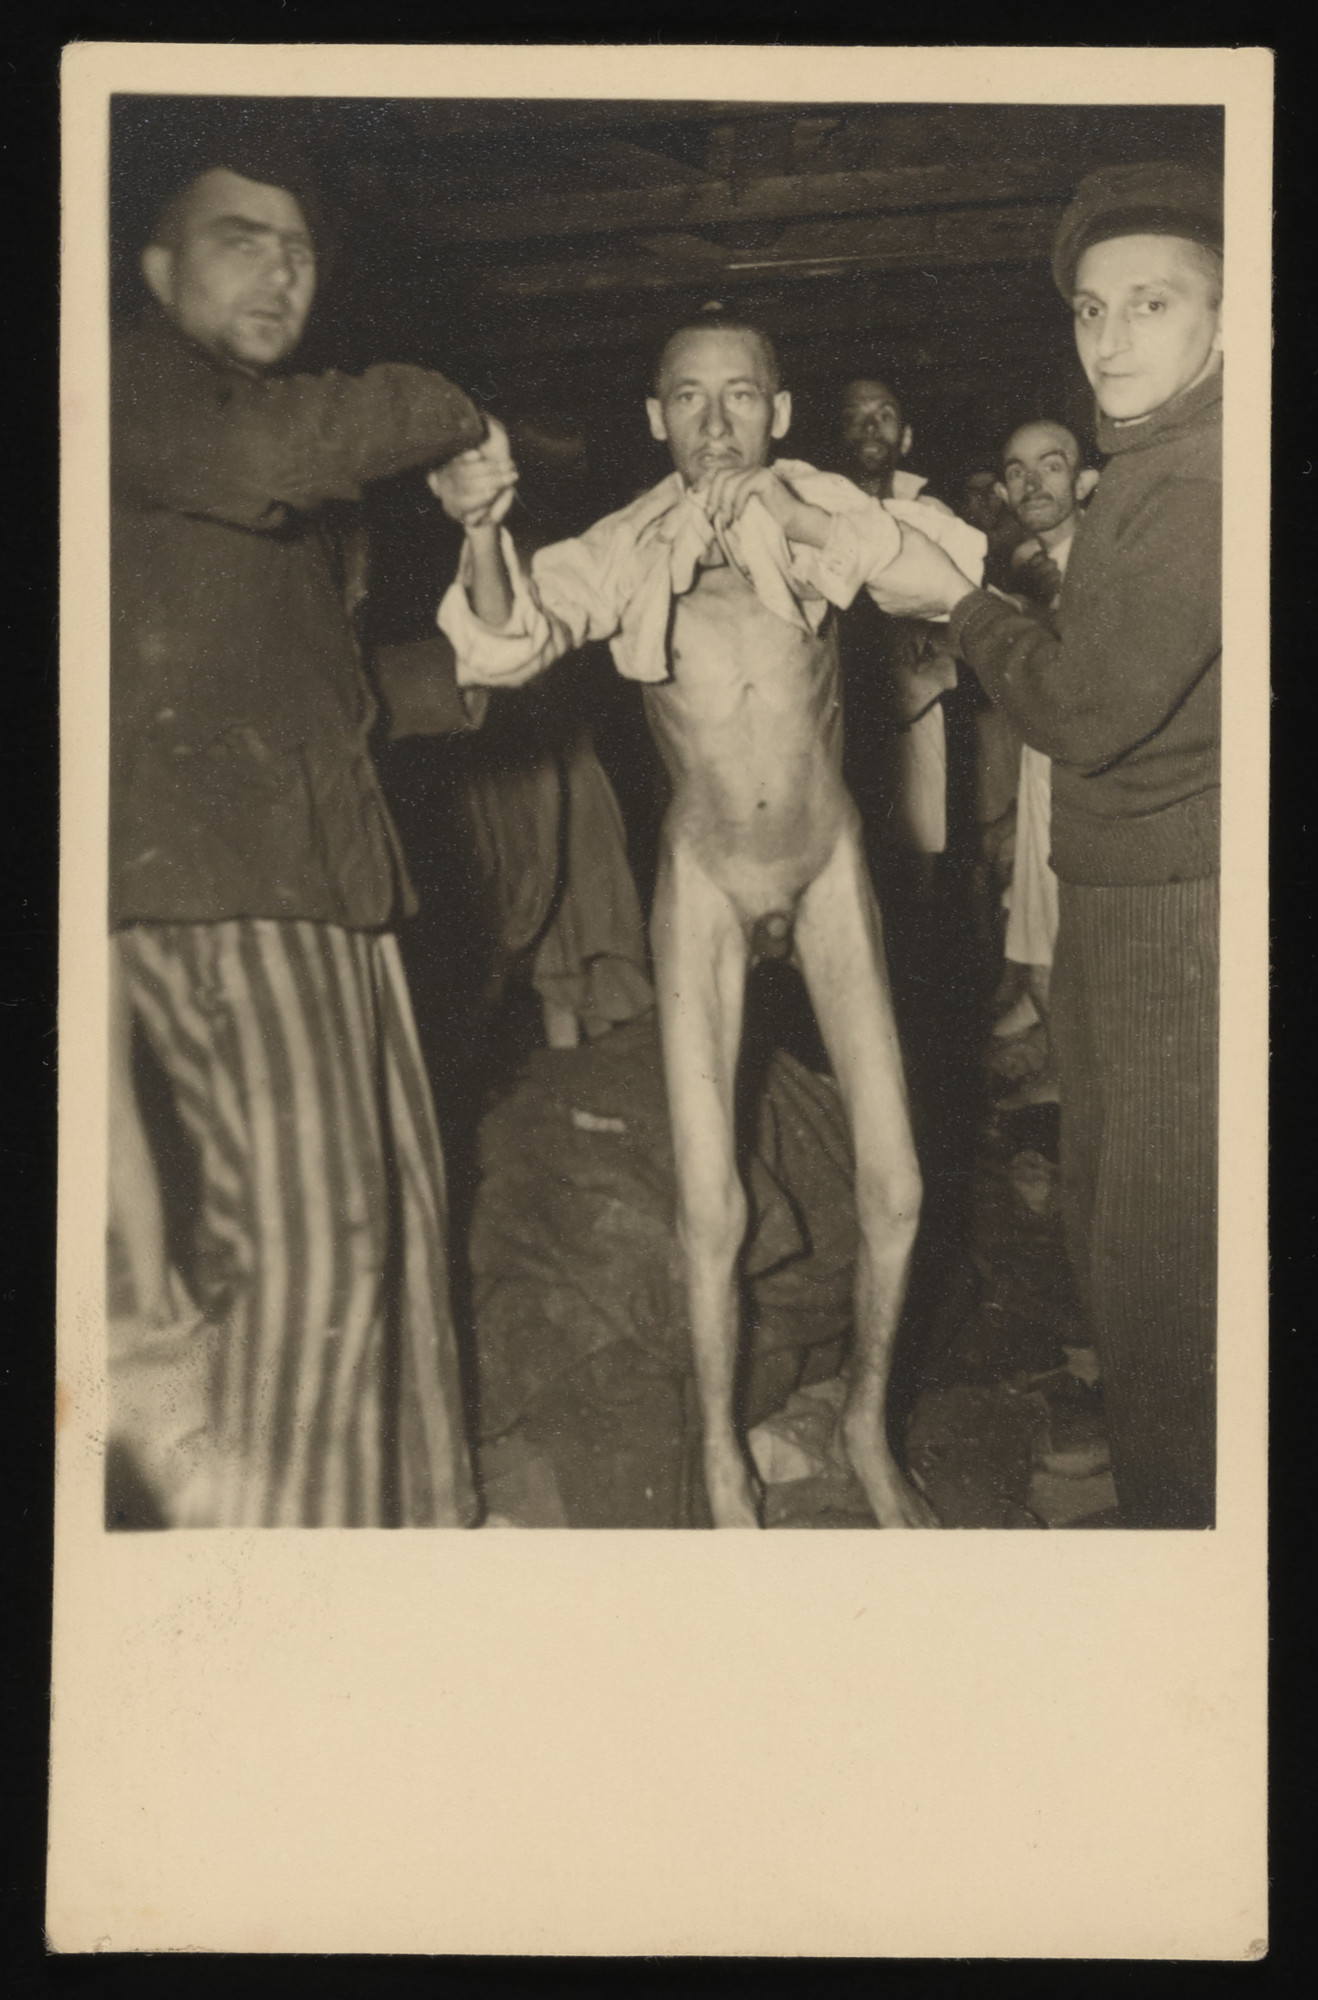 """Assisted by two other men, a survivor holds up his shirt to display his emaciated condition in the newly liberated Buchenwald concentration camp.  The original caption reads, """"This man being helped along by his frends is so weak from the lack of food that he can hardly walk. One of the many hundreds in the same condition at the cap of Weimar Germany."""" [sic]  According to the Signal Corps caption, the photo was taken on April 14, 1945."""